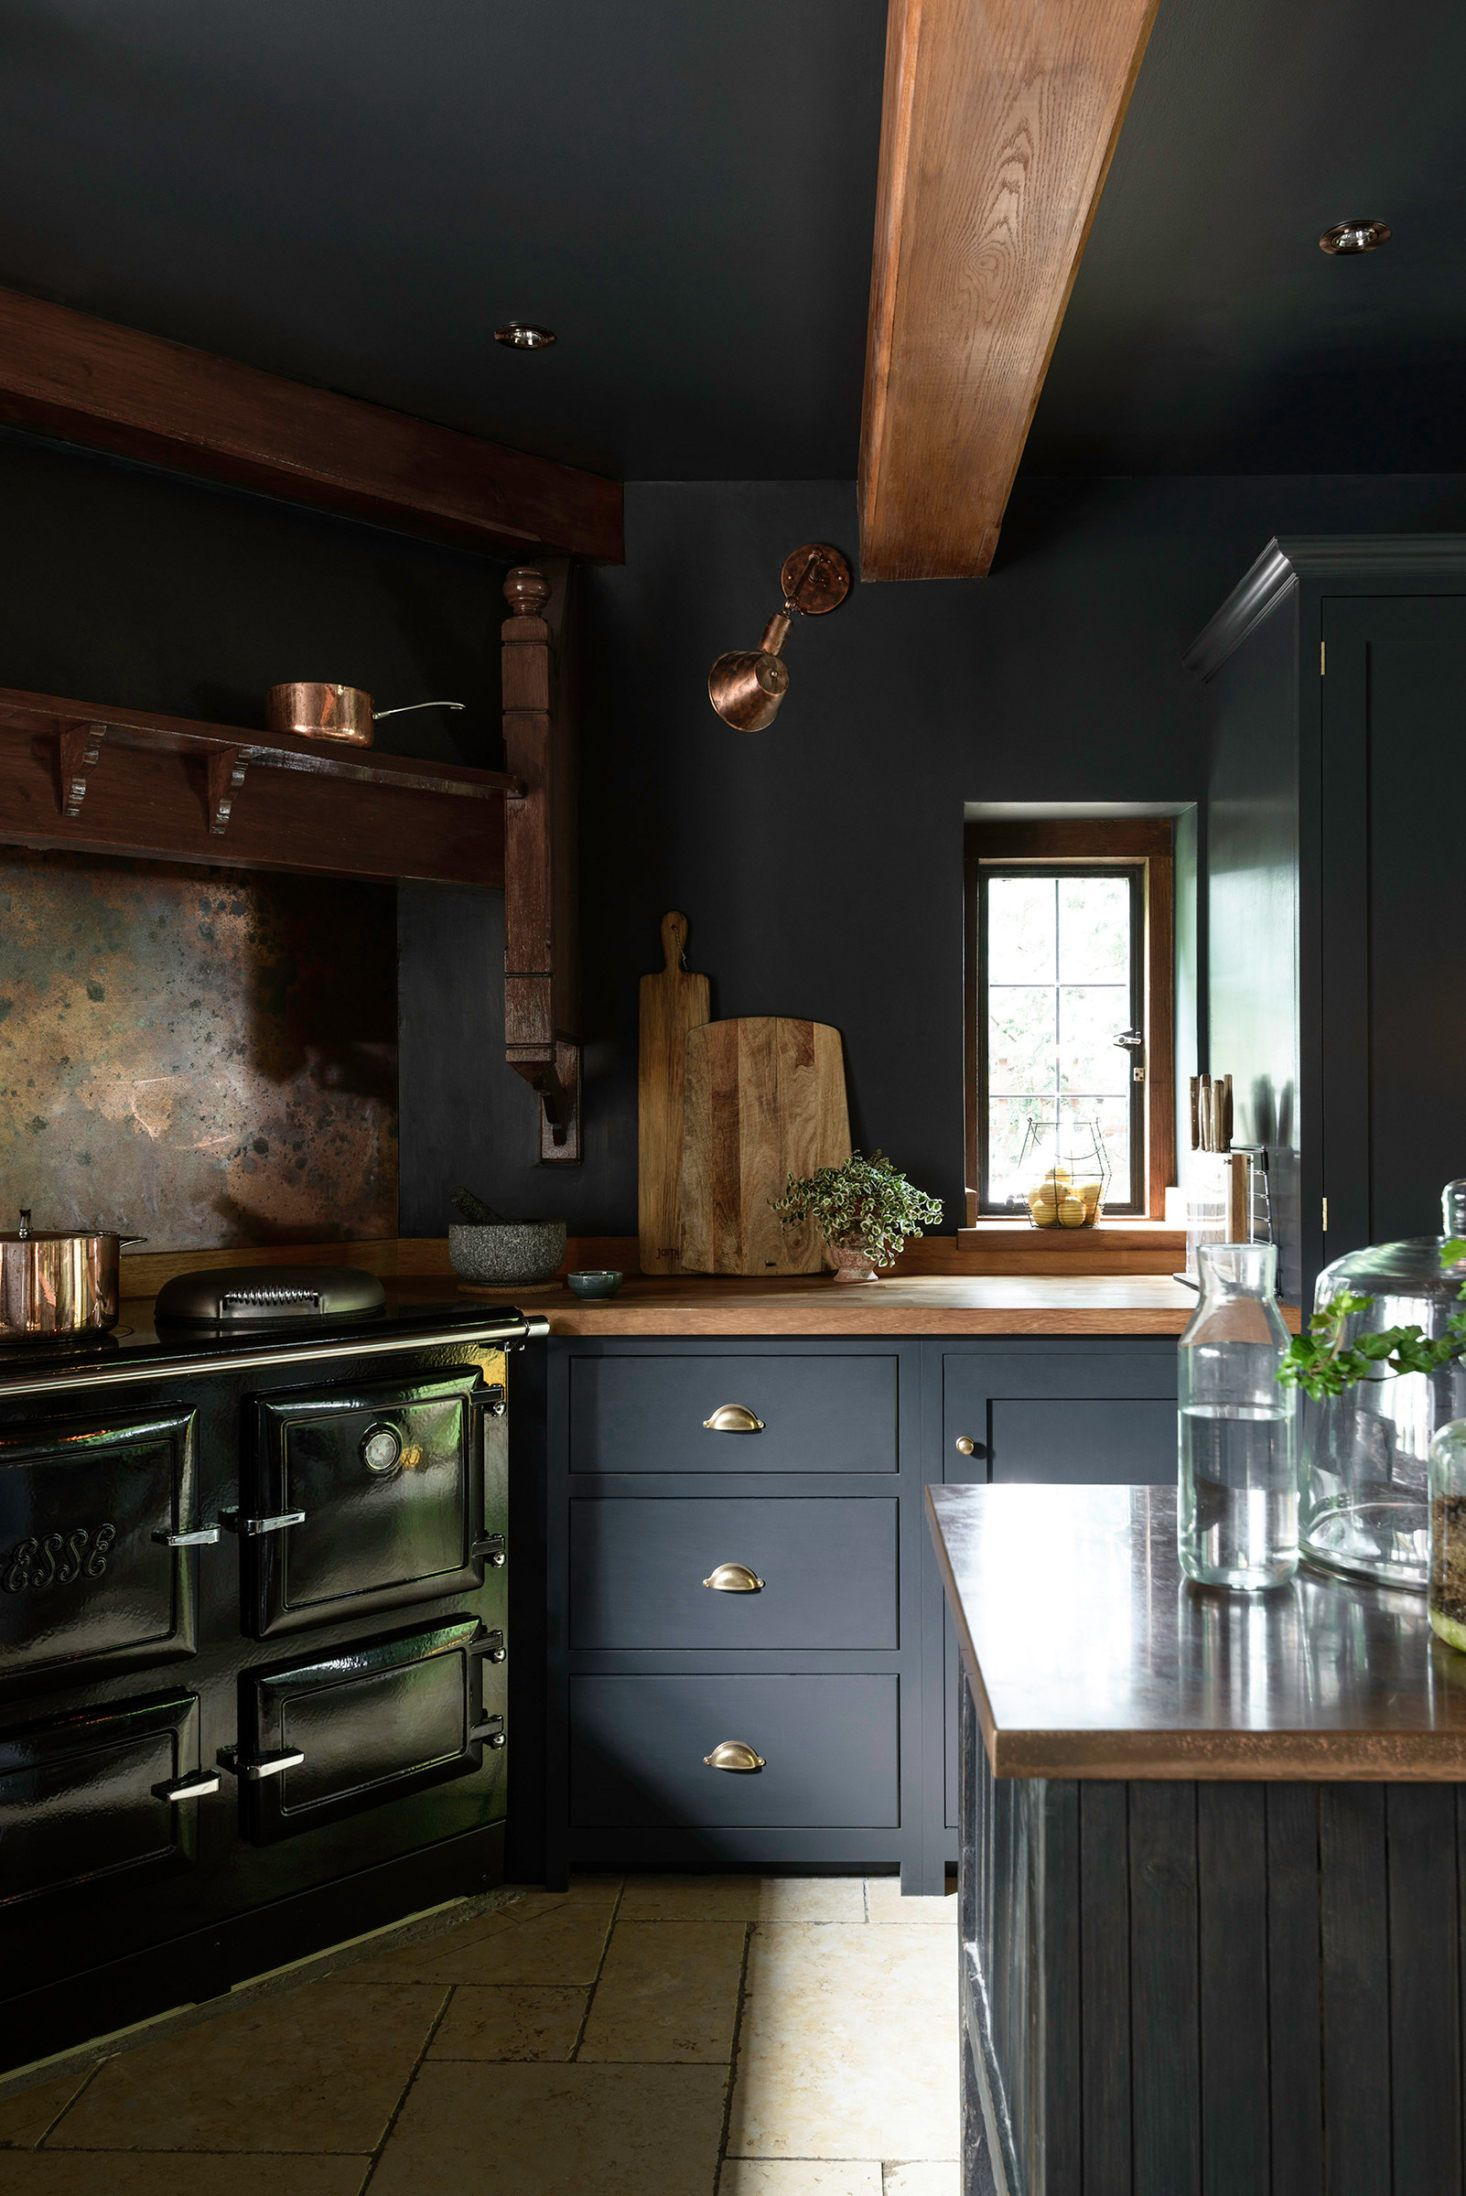 Kitchen Of The Week An Award Winning Devol Project With A Heart Of Darkness Devol Kitchens Kitchen Design Trends Kitchen Trends